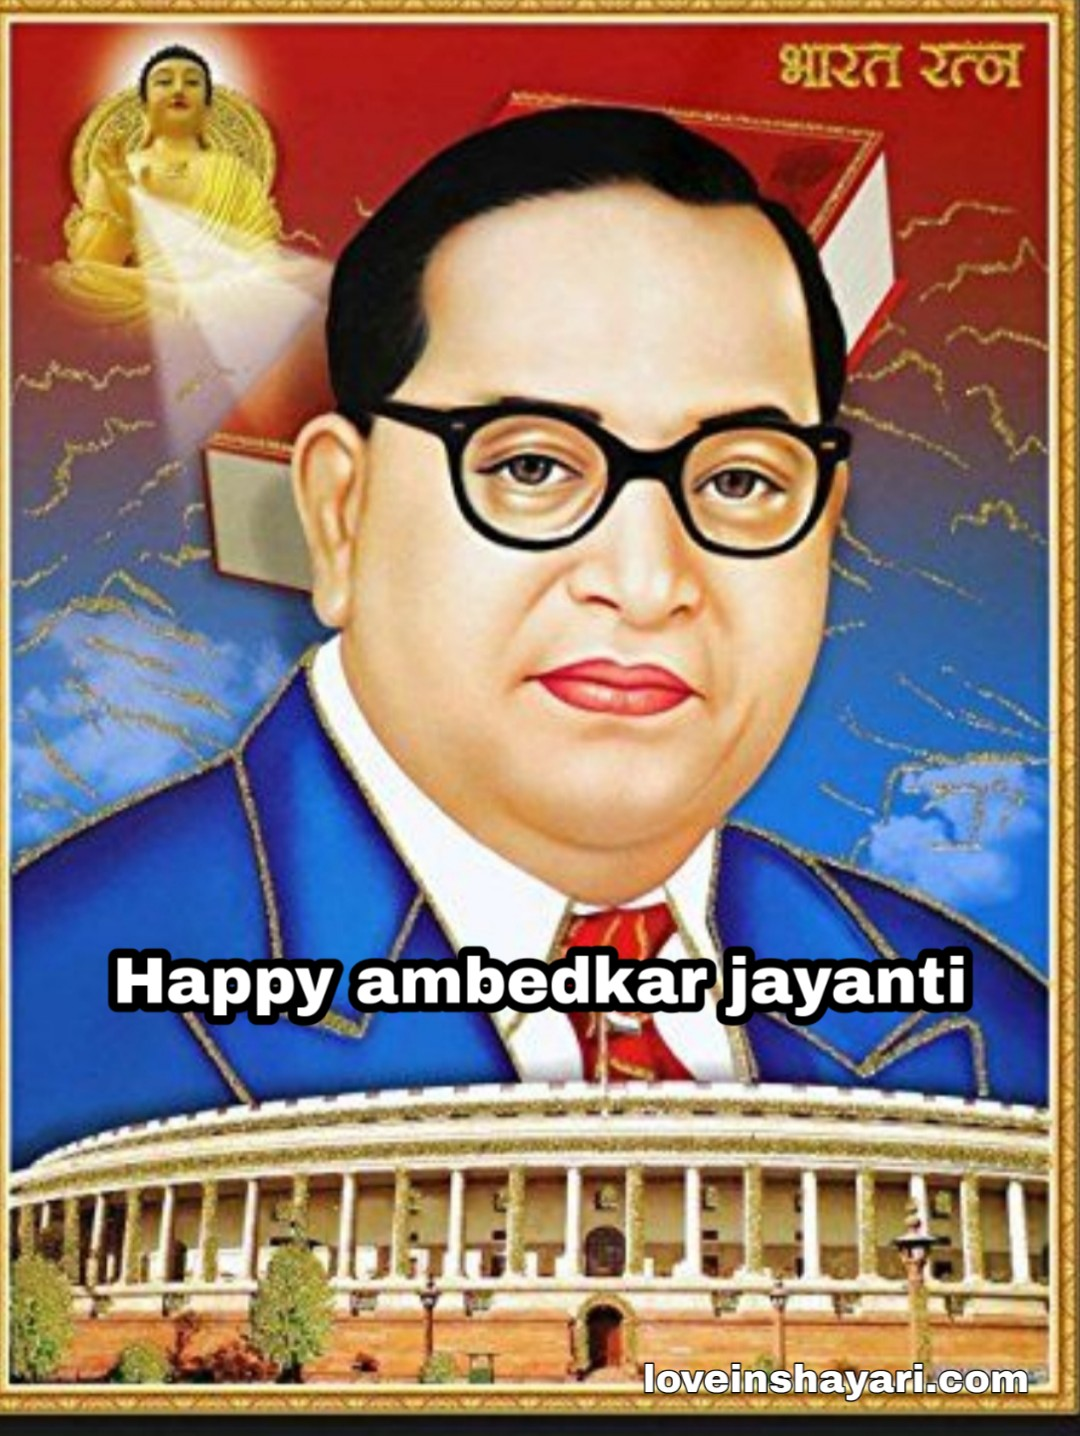 Photo of Ambedkar jayanti Images 2020 hd